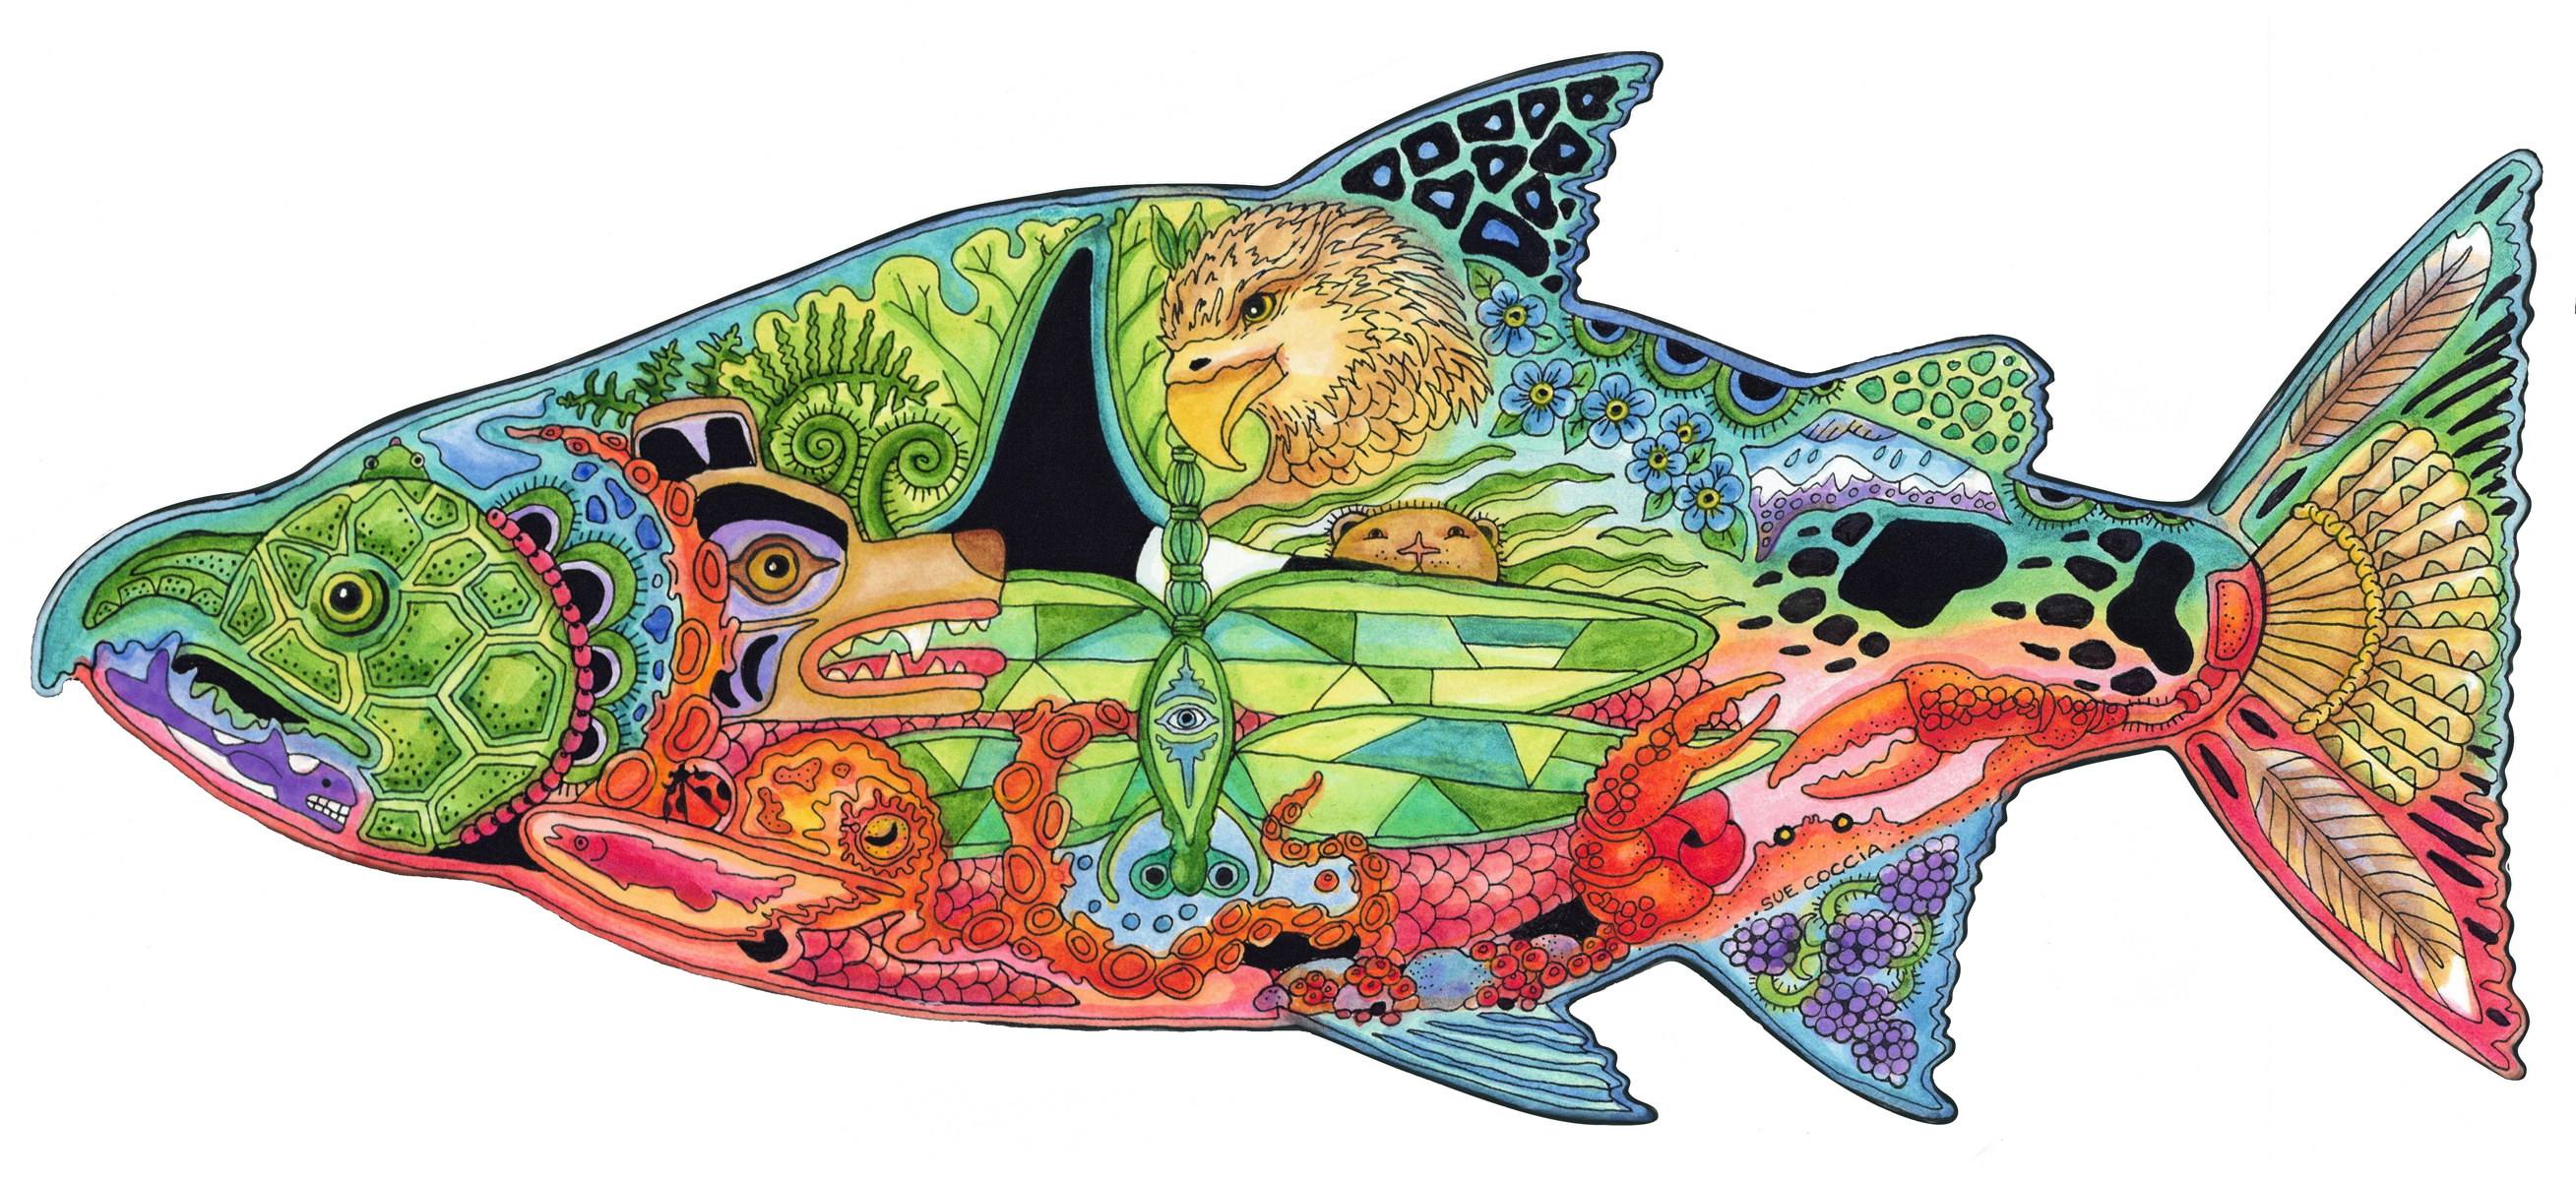 Salmon clipart chinook salmon. Wooden jigsaw puzzle liberty